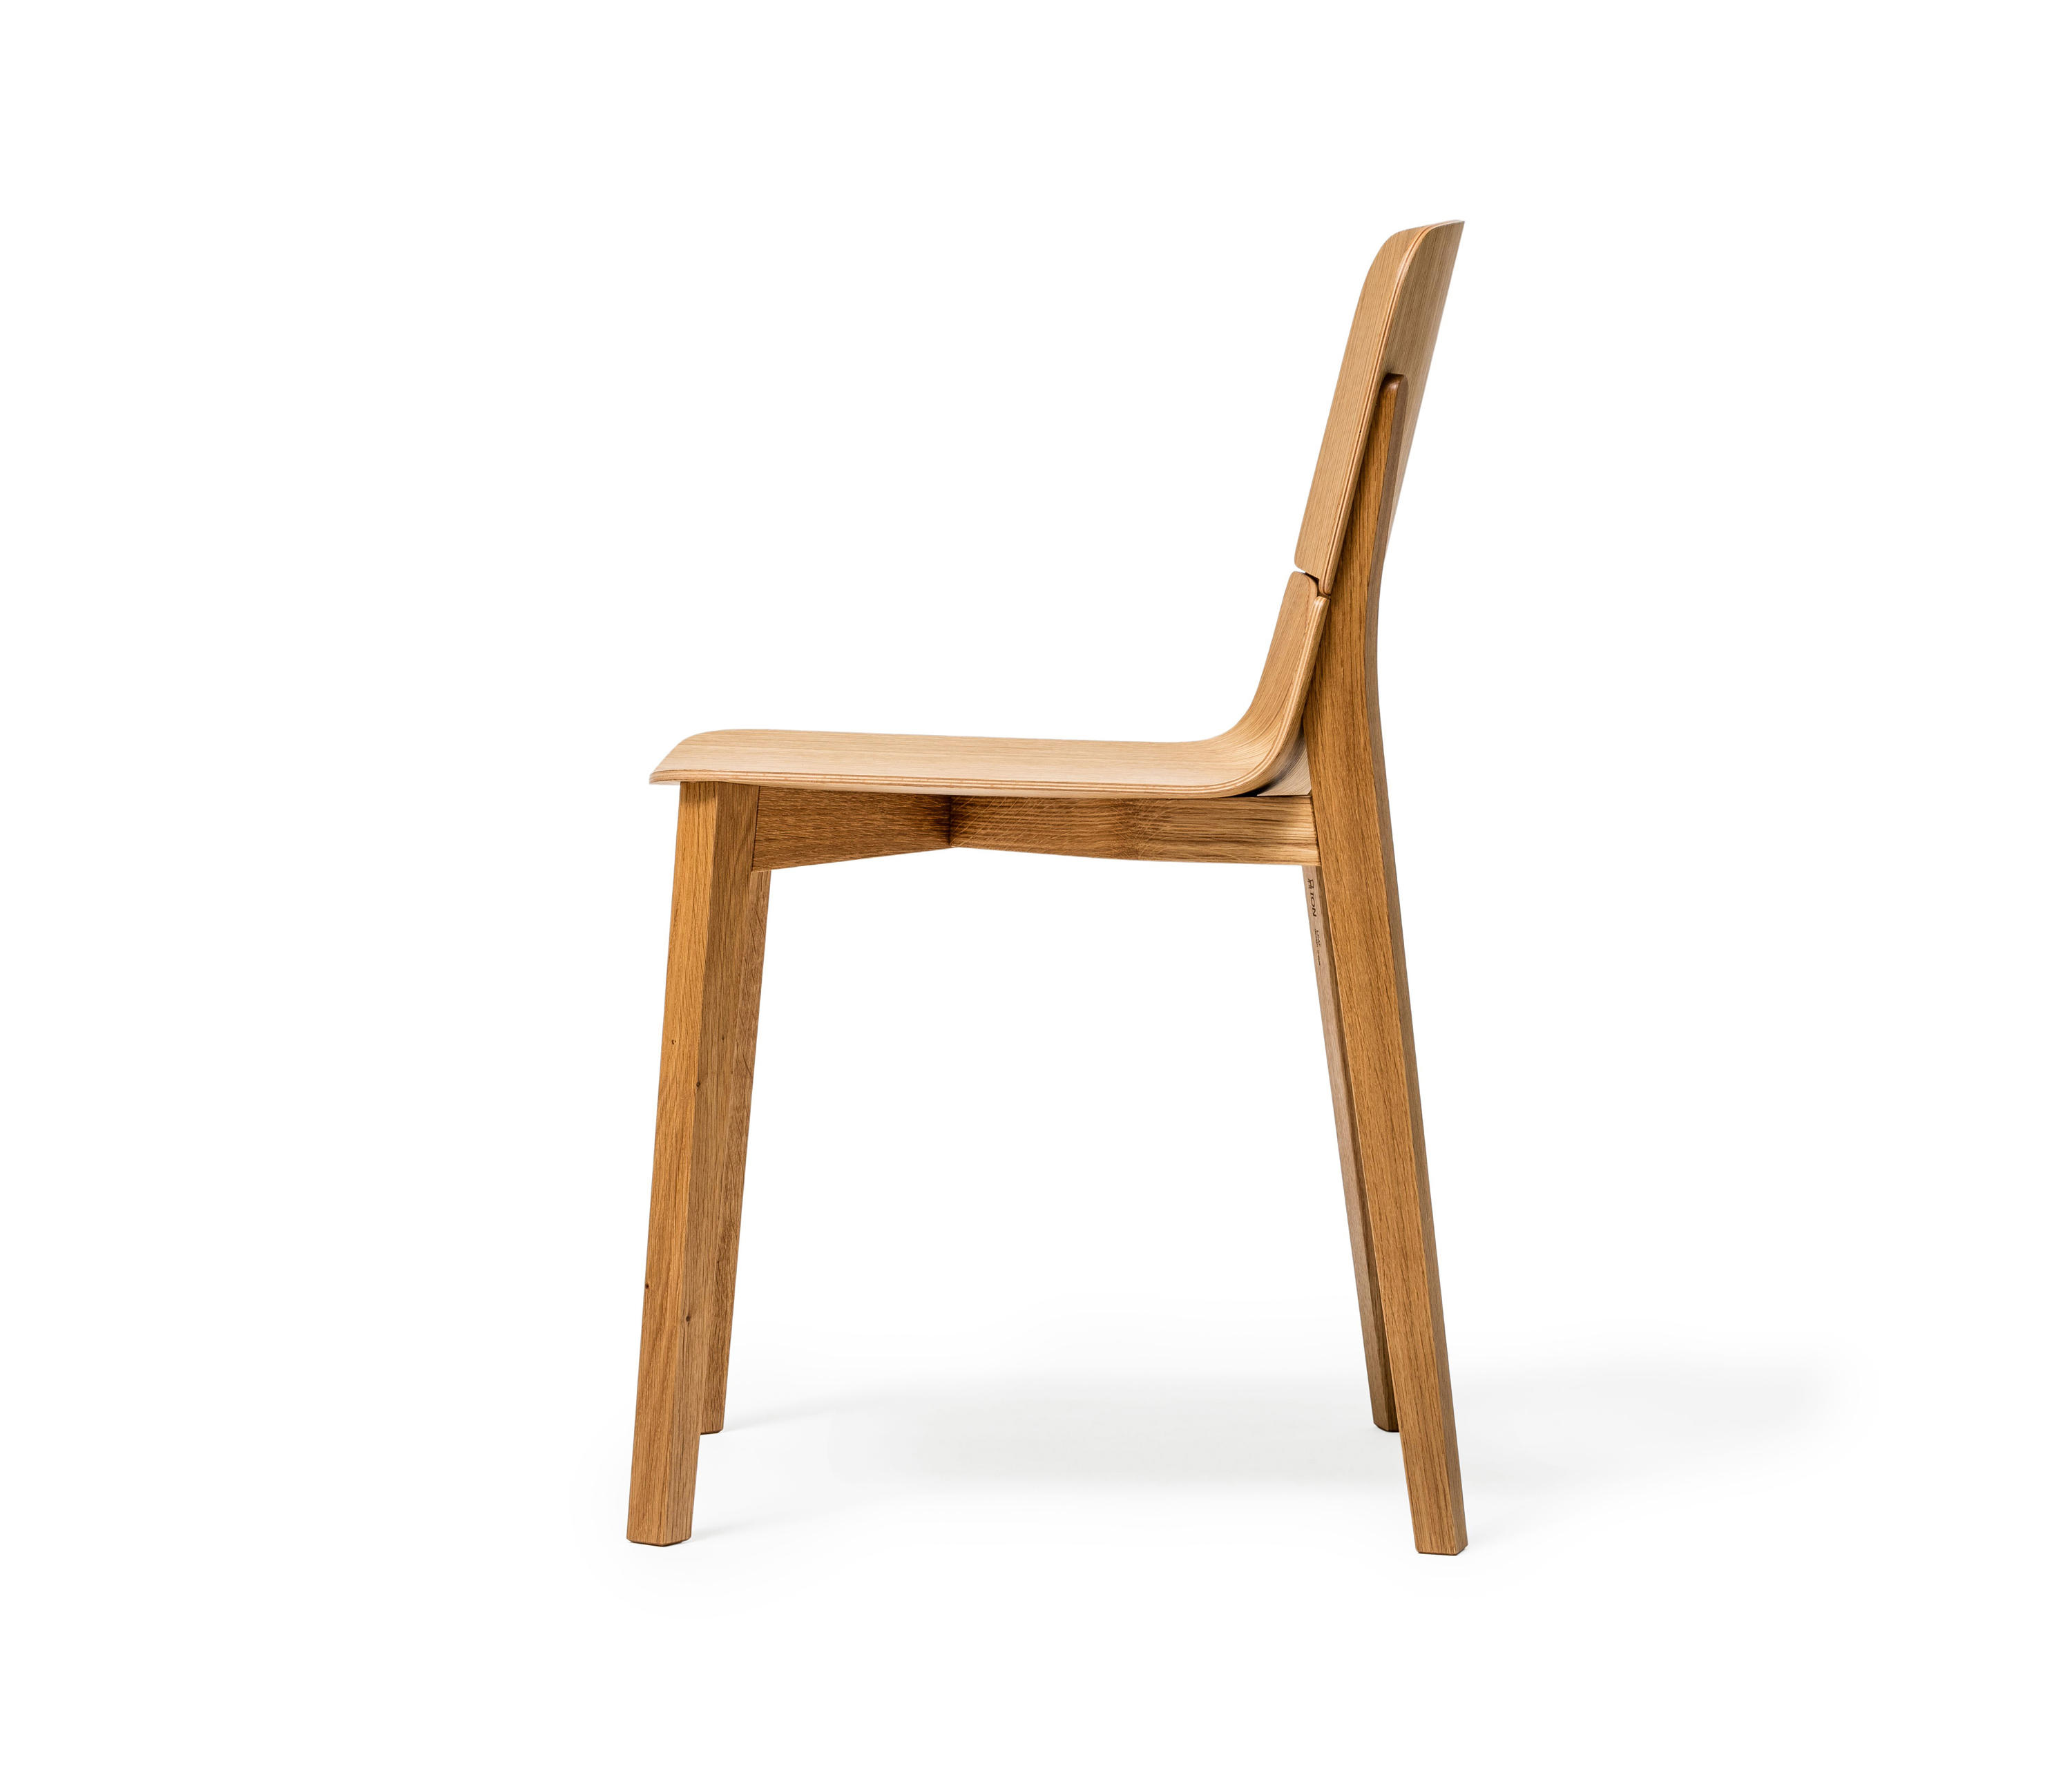 ... Leaf Chair by TON | Chairs ...  sc 1 st  Architonic & LEAF CHAIR - Chairs from TON | Architonic